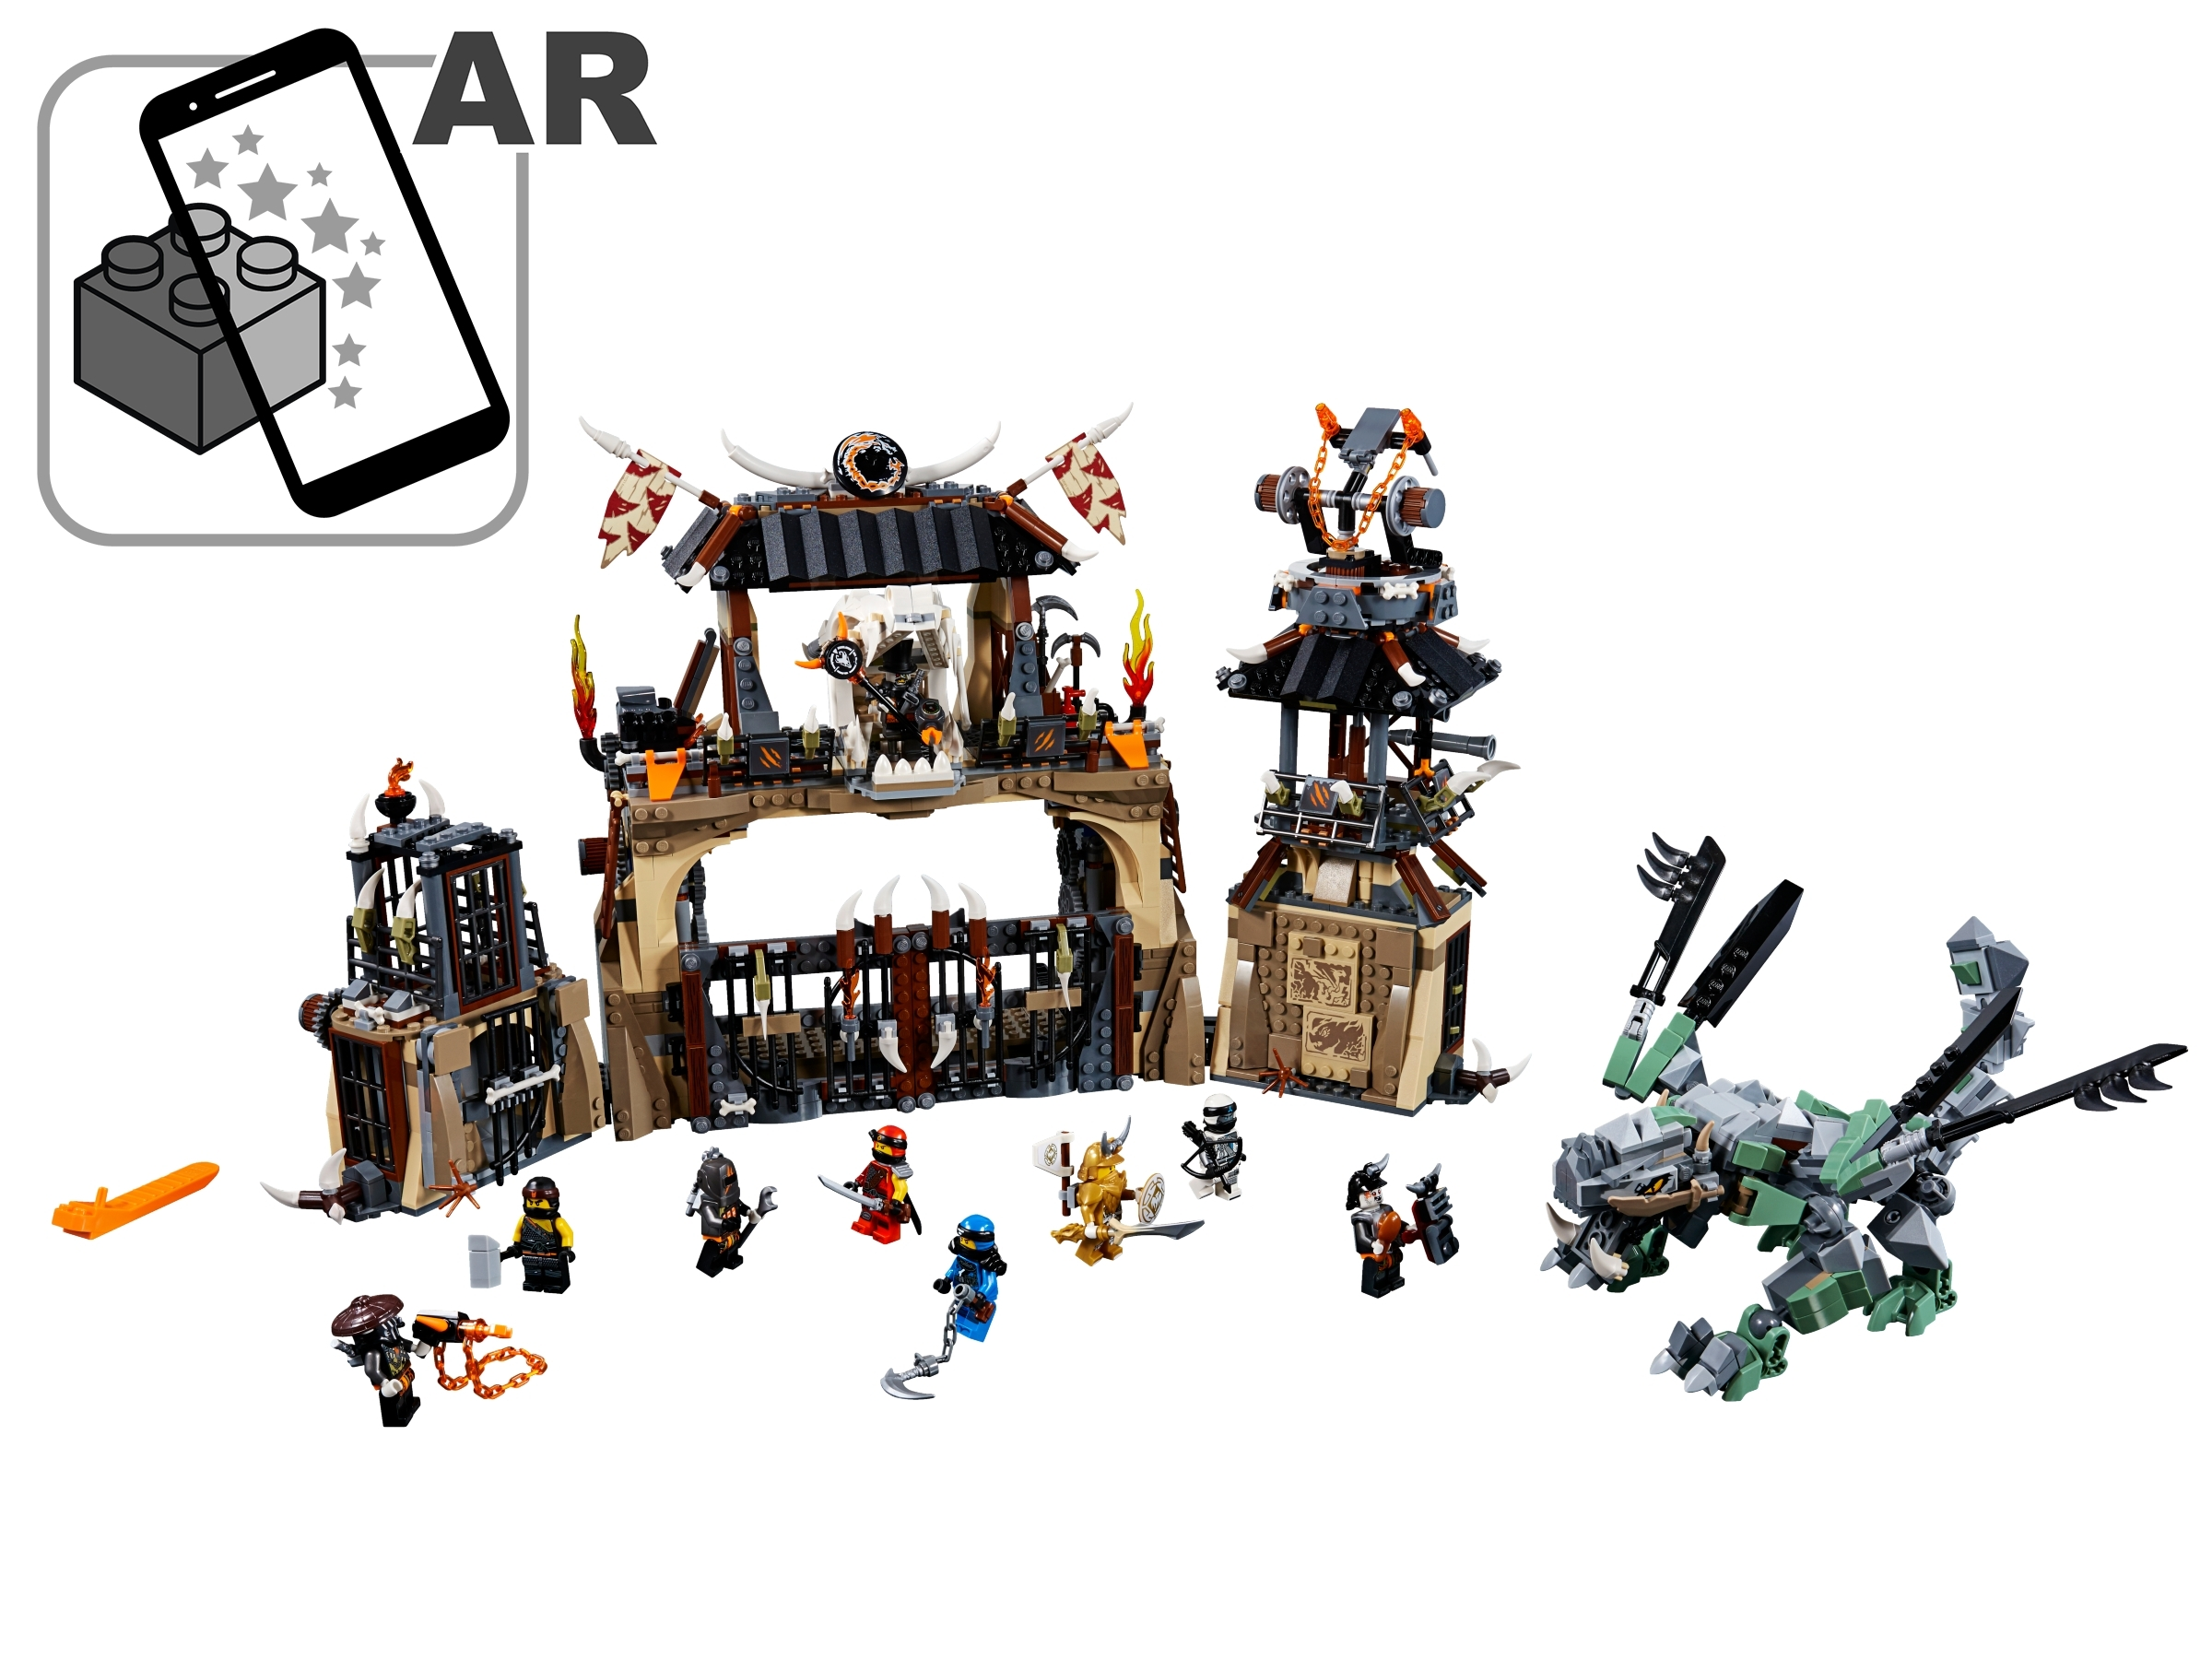 Dragon Pit 70655 Ninjago Buy Online At The Official Lego Shop Us Uploaded · published february 18, 2019 · updated october 13, 2020. dragon pit